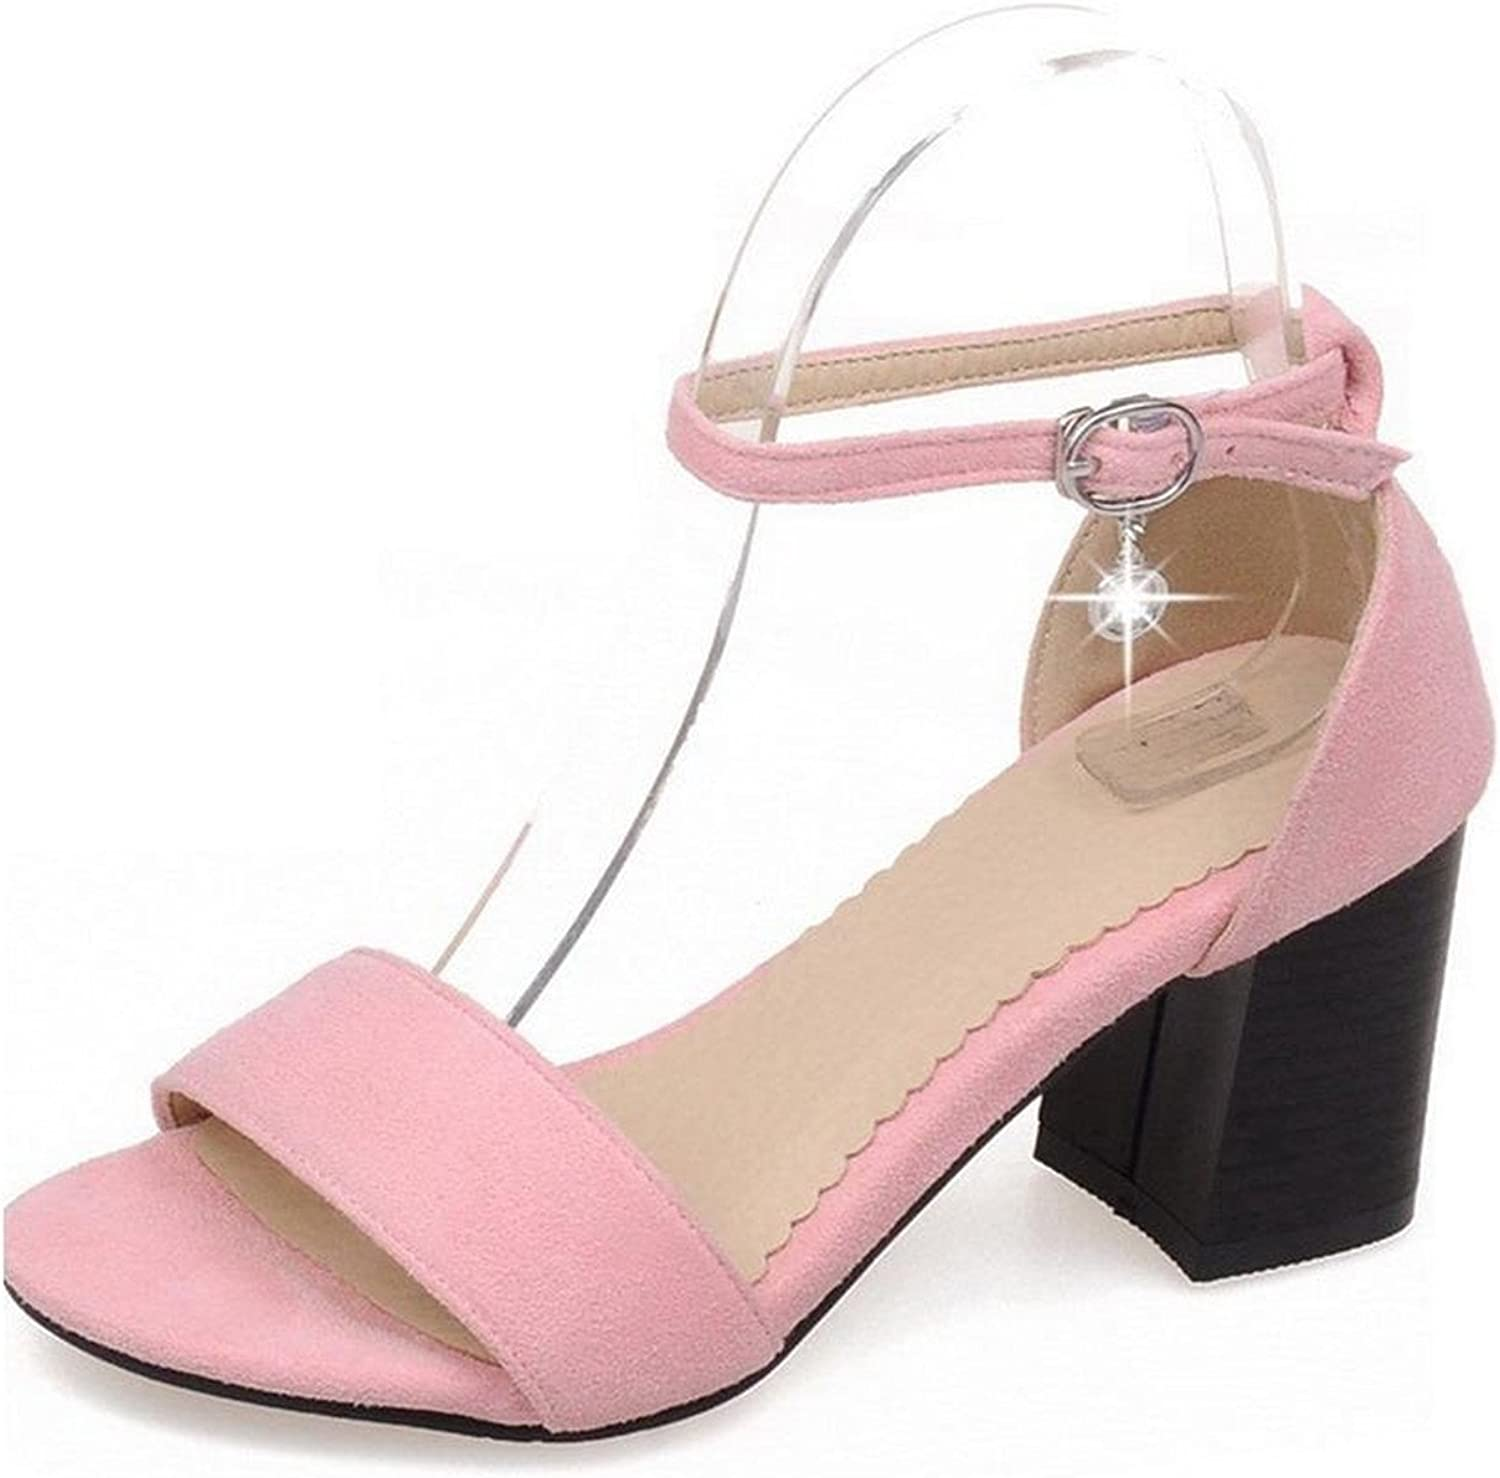 Ompson Women's Buckle High Heels Frosted Solid Open Toe Heeled-Sandals